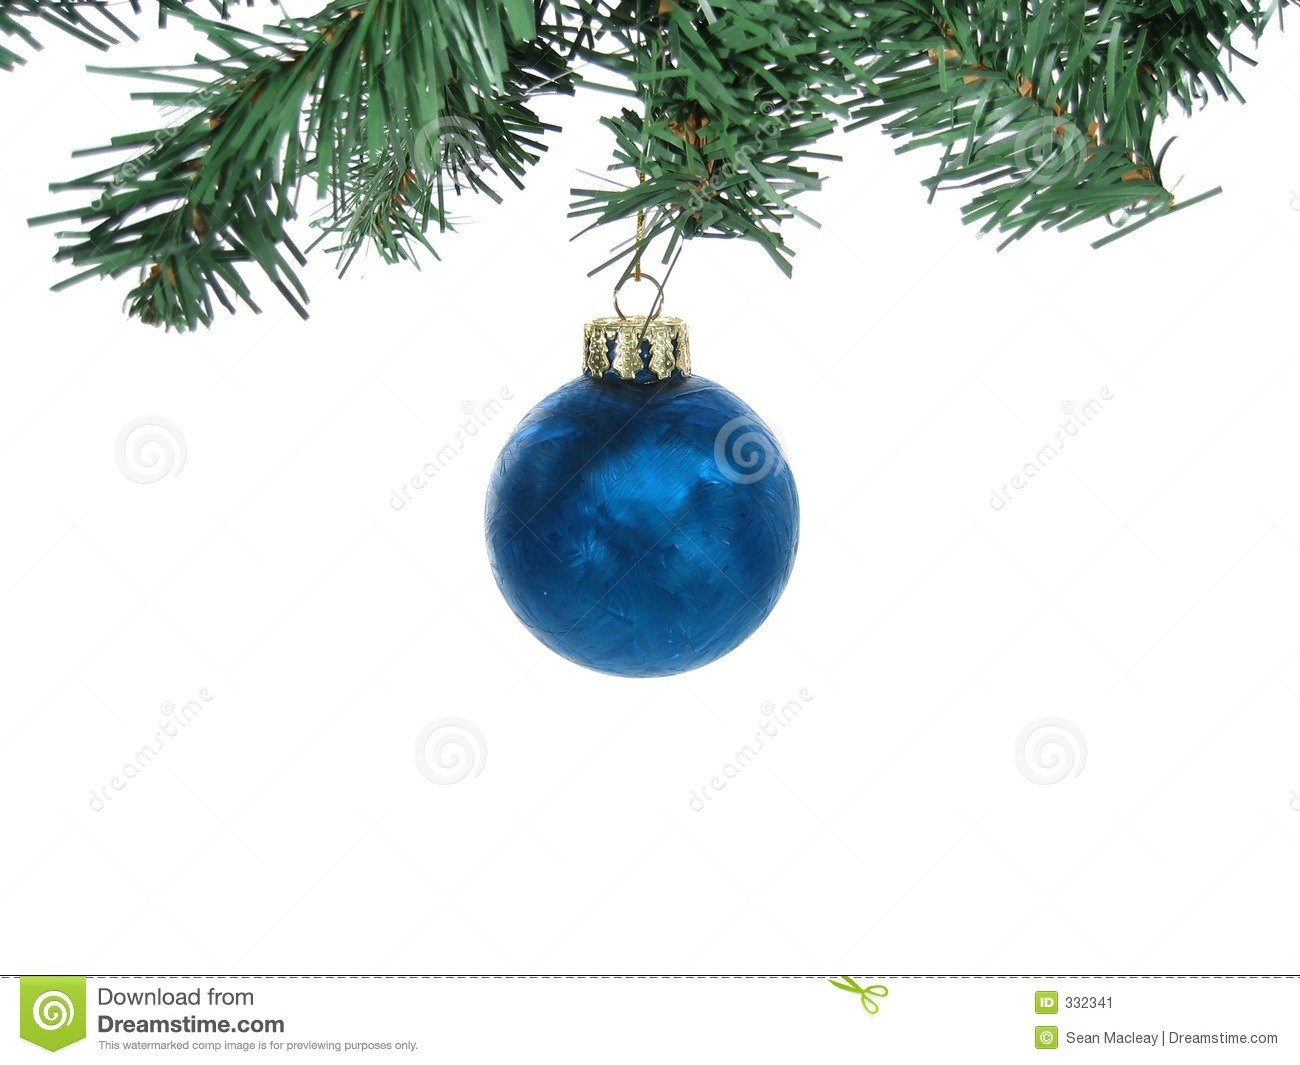 Frosted christmas ornaments - Blue Frosted Christmas Ornament With Branches Isolated